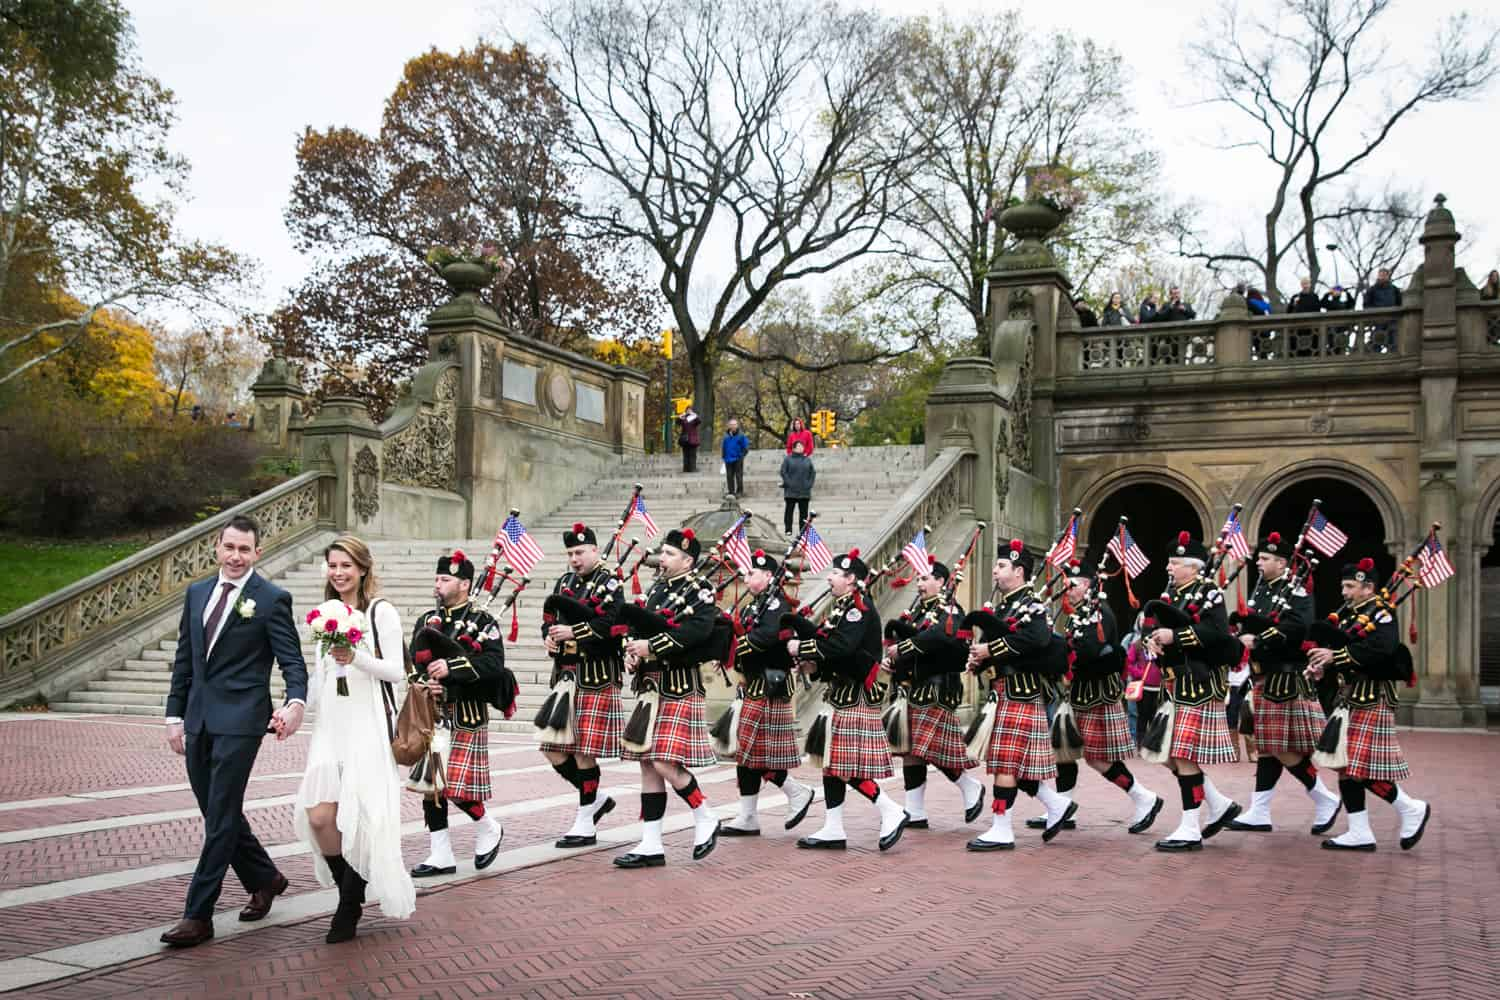 Bride and groom in front of Scottish marching band at a Bethesda Fountain wedding in Central Park